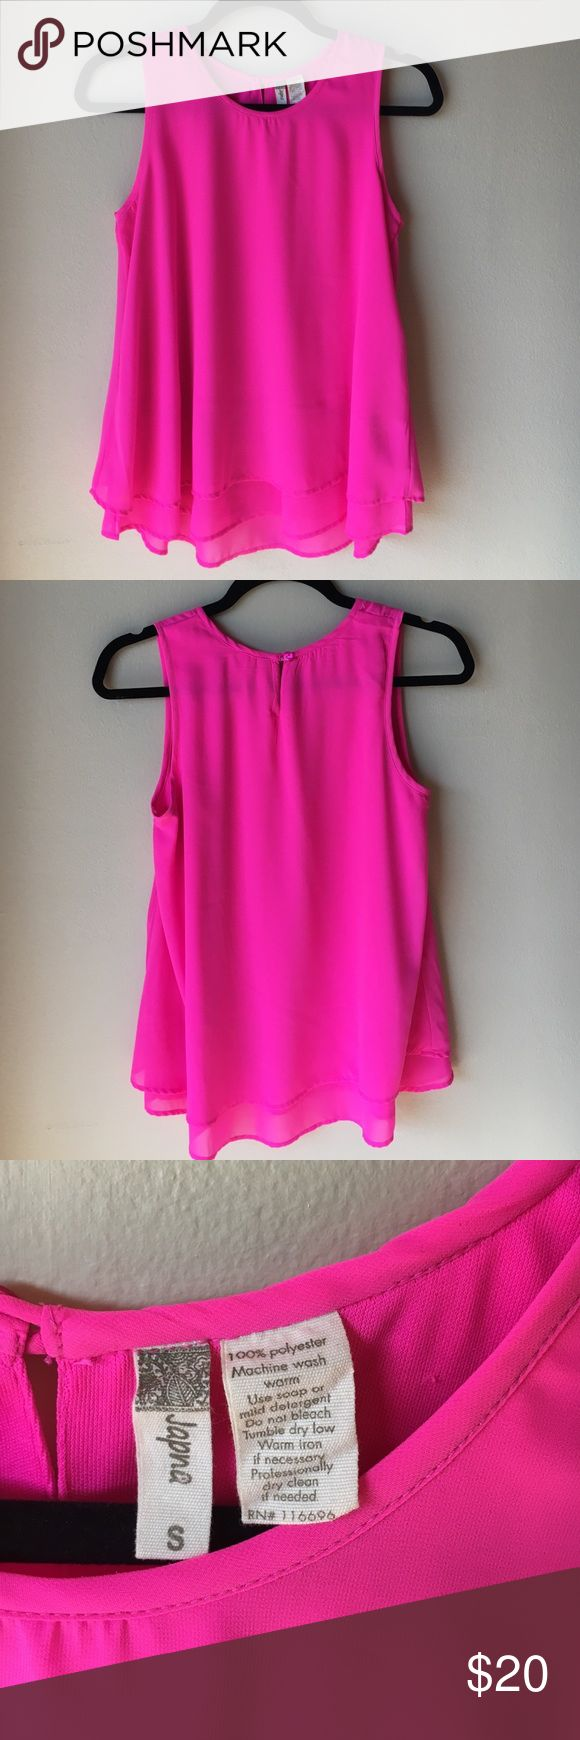 Hot Pink Sleeveless Blouse Hot Pink Sleeveless Blouse - Size Small - Japna! NWOT!!! Took the tags off but never wore it...such a cute top!! Great bright color! Japna Tops Blouses